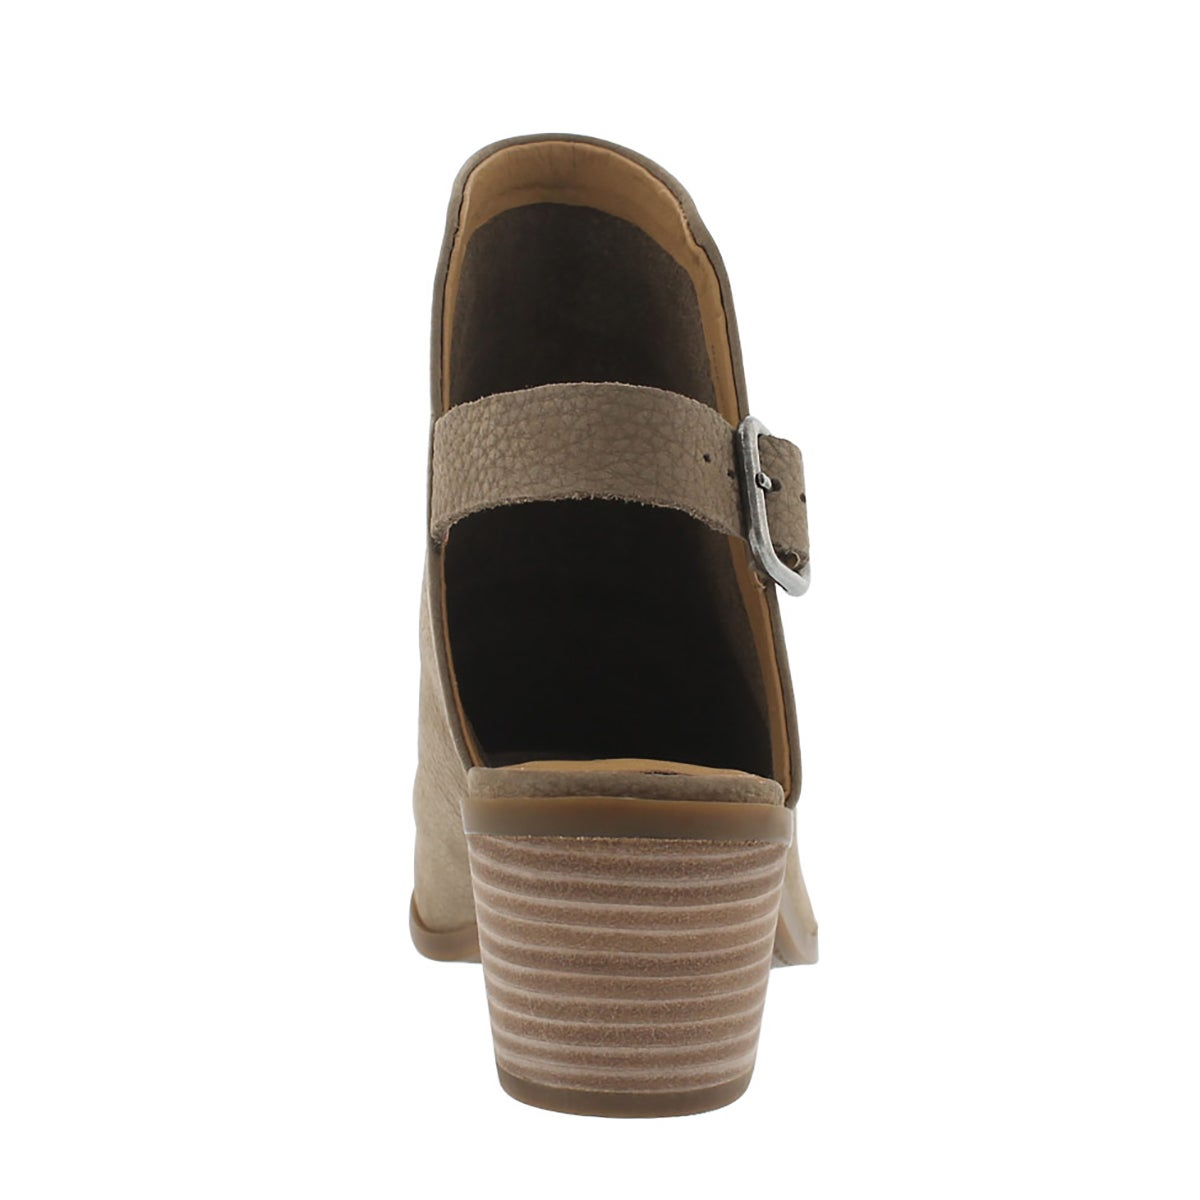 Lds Bray brindle casual sandal